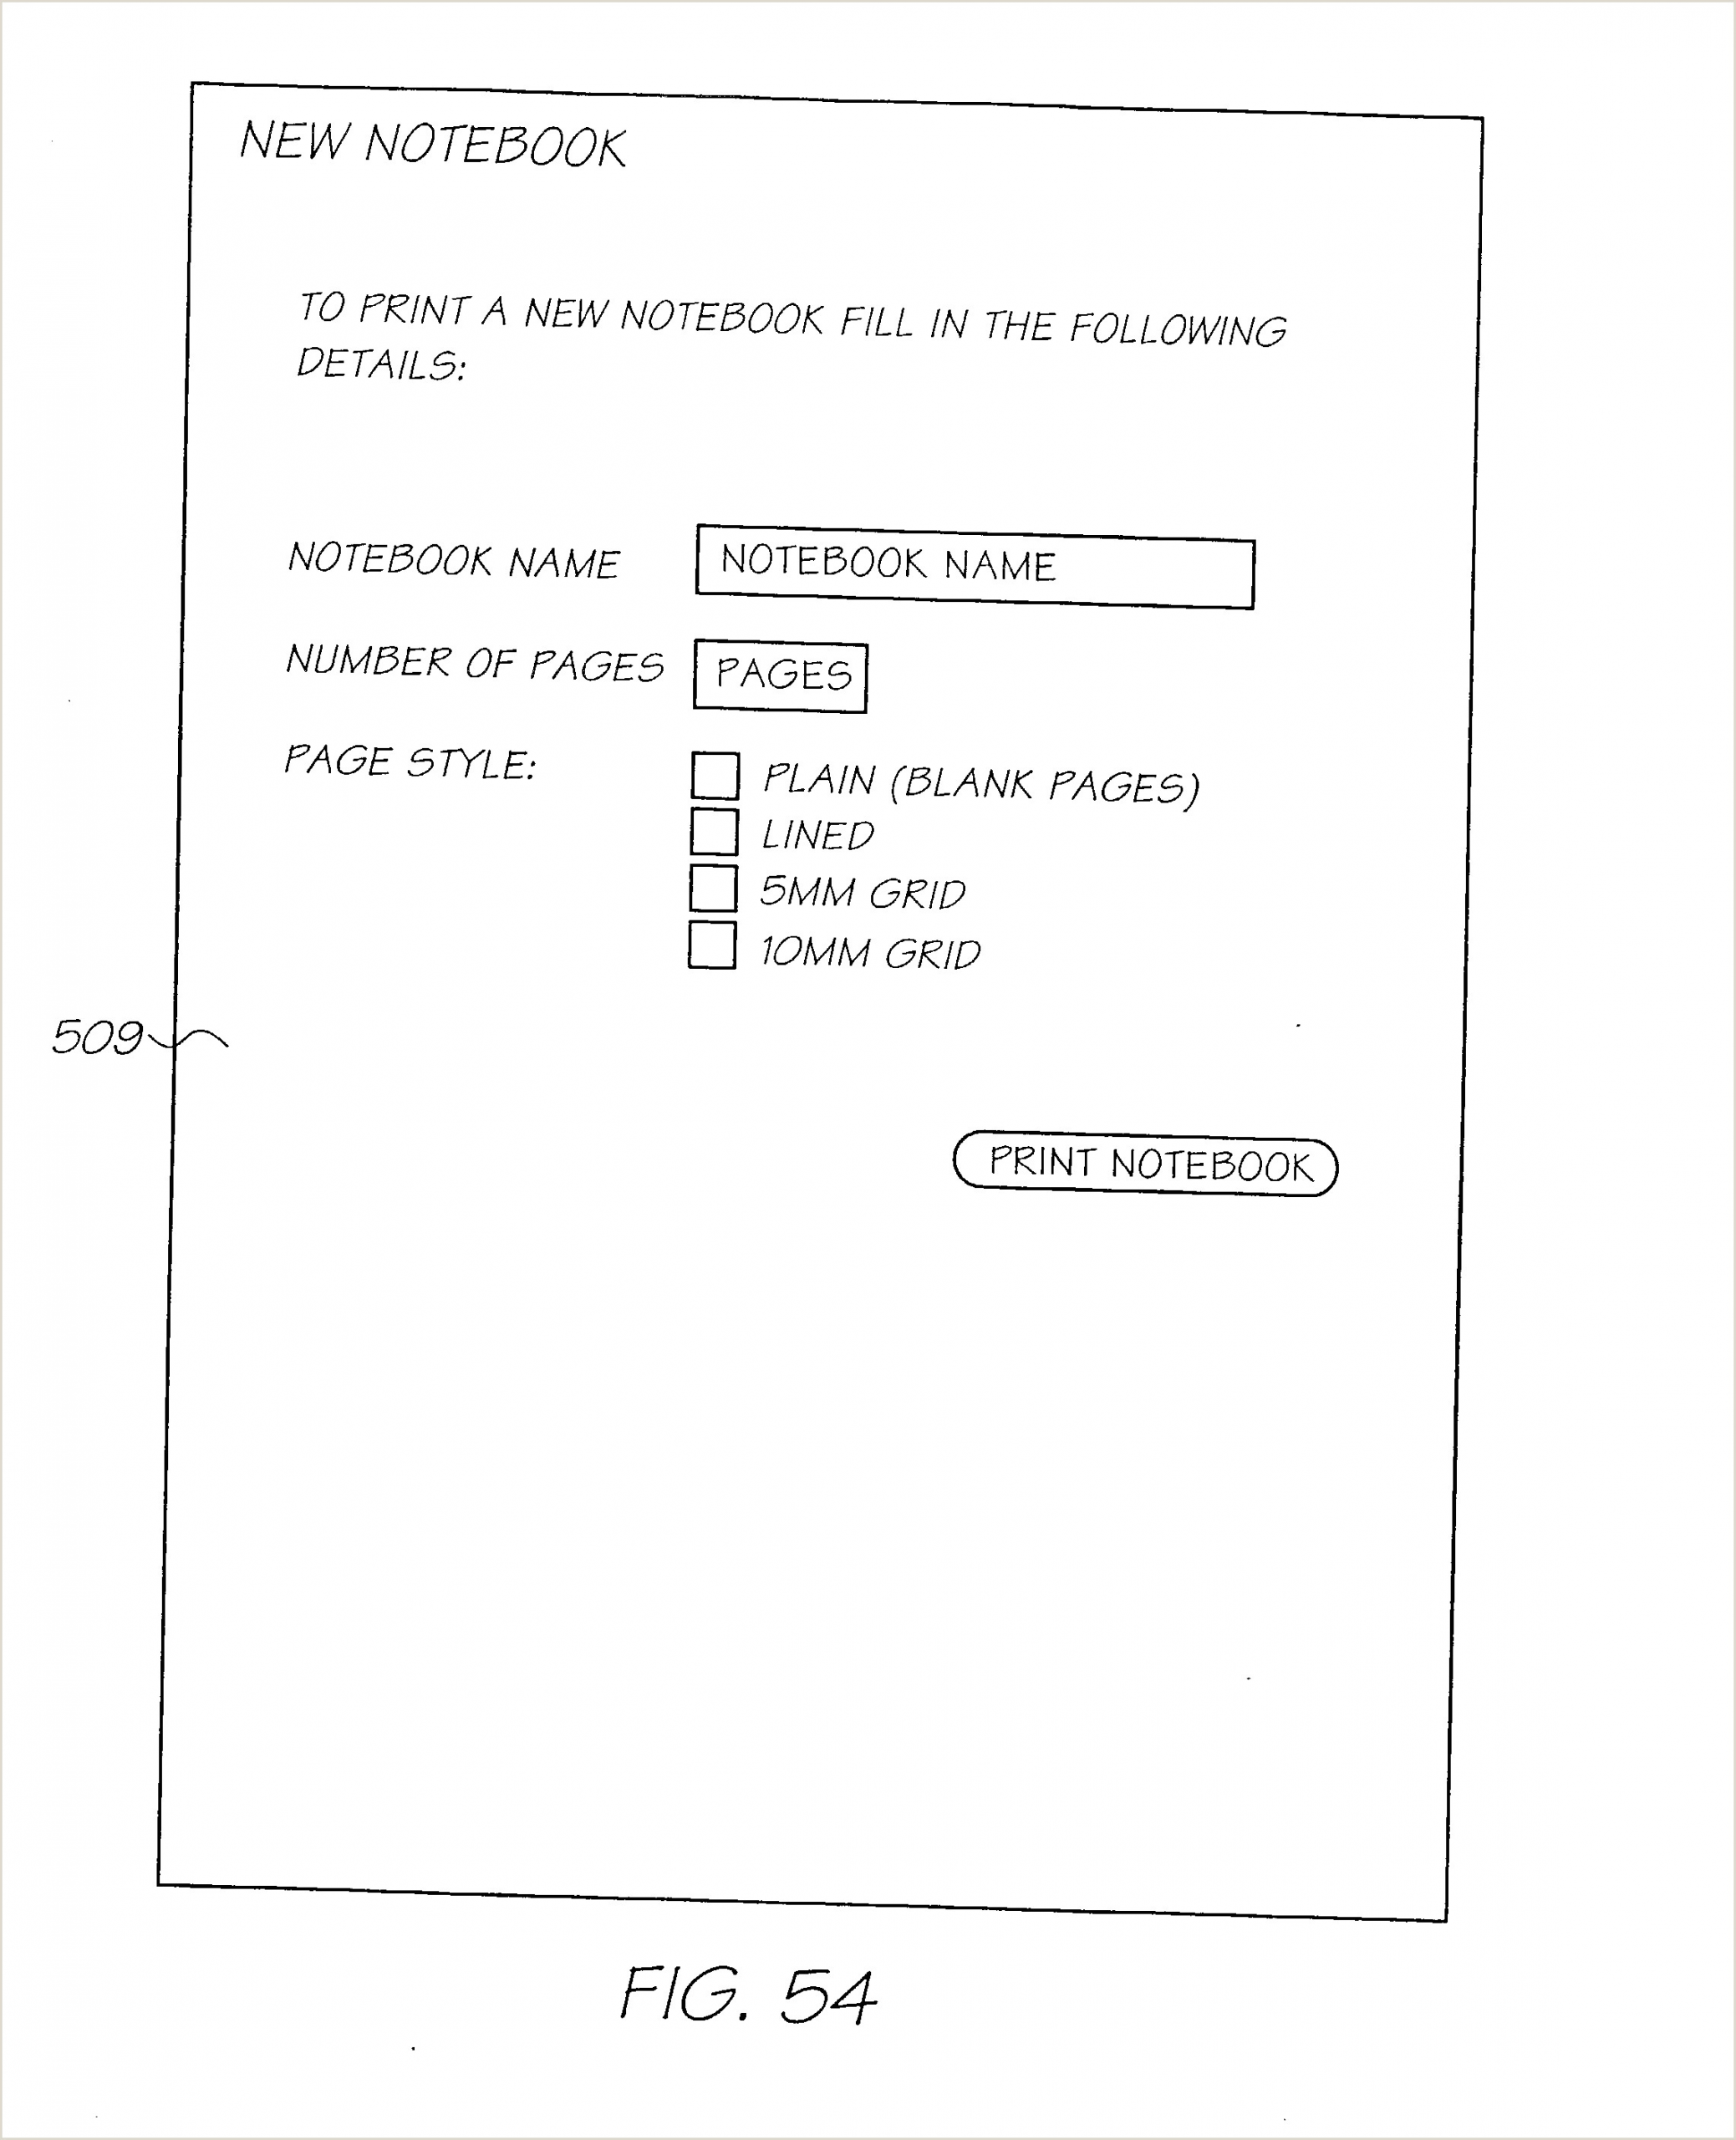 Which Of The Following Is A Good Rule To Follow When Using Business Cards? Us A1 Method And System For Note Taking Using